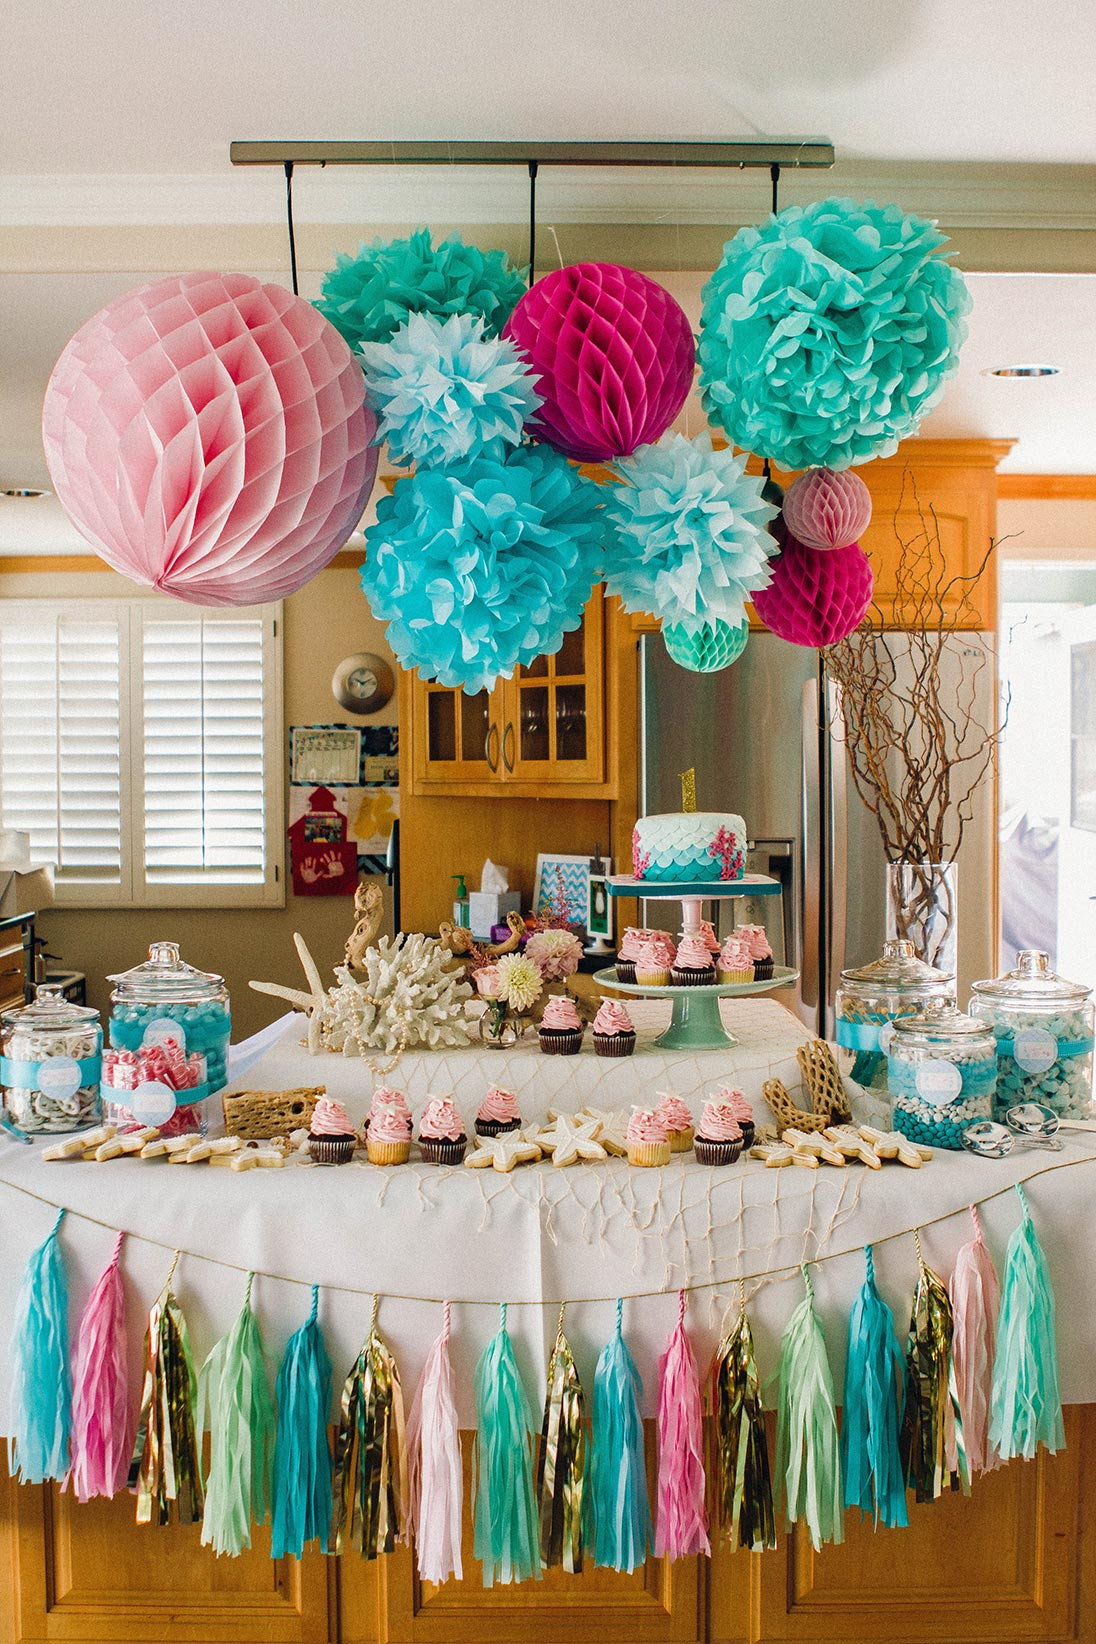 Best ideas about Mermaid Themed Birthday Party . Save or Pin Emilee s Fun Mermaid Themed Birthday Party Now.